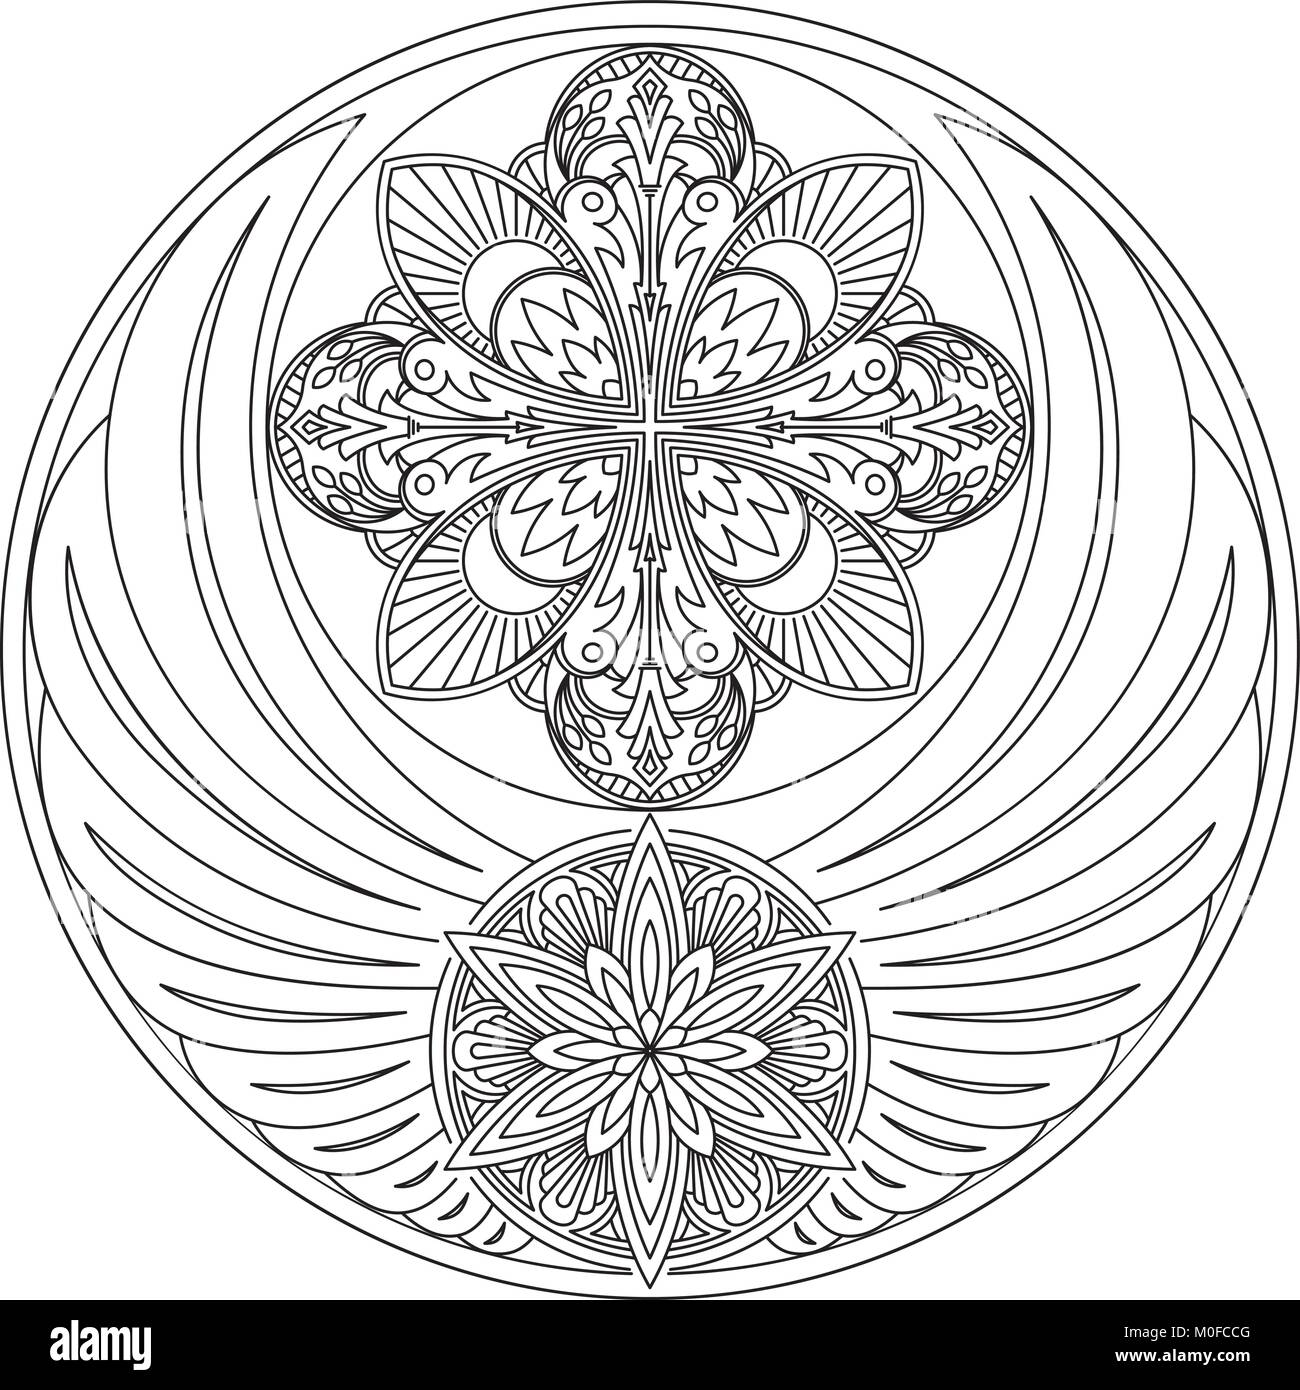 d364f7fec The unusual round design with wings and two mandalas. It can be used for a